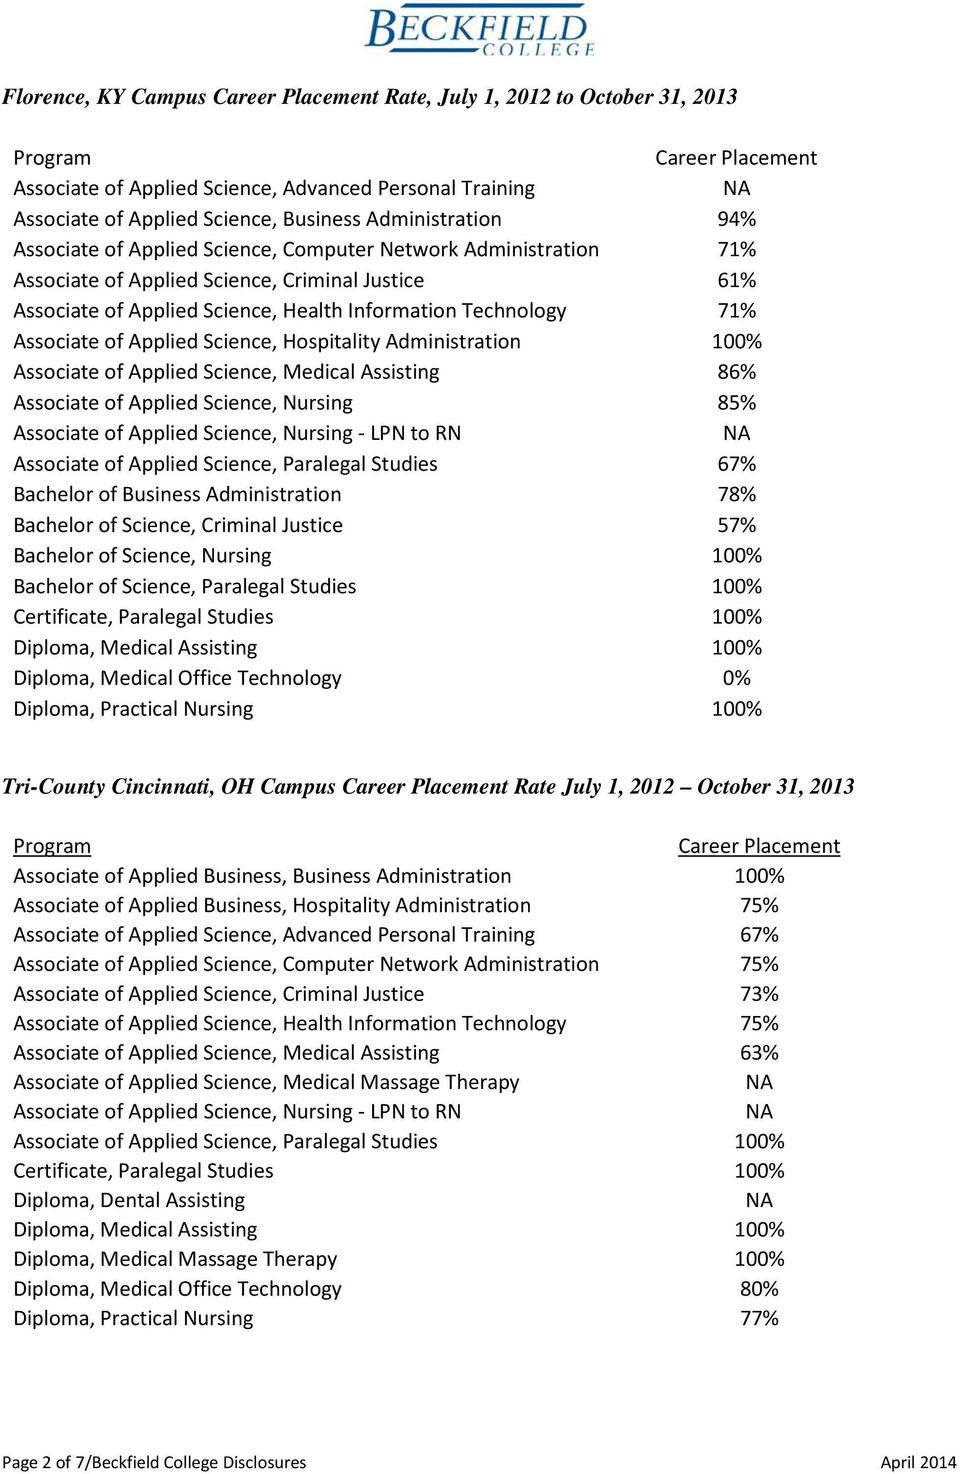 Associate of Applied Science, Hospitality Administration 100% Associate of Applied Science, Medical Assisting 86% Associate of Applied Science, Nursing 85% Associate of Applied Science, Nursing - LPN